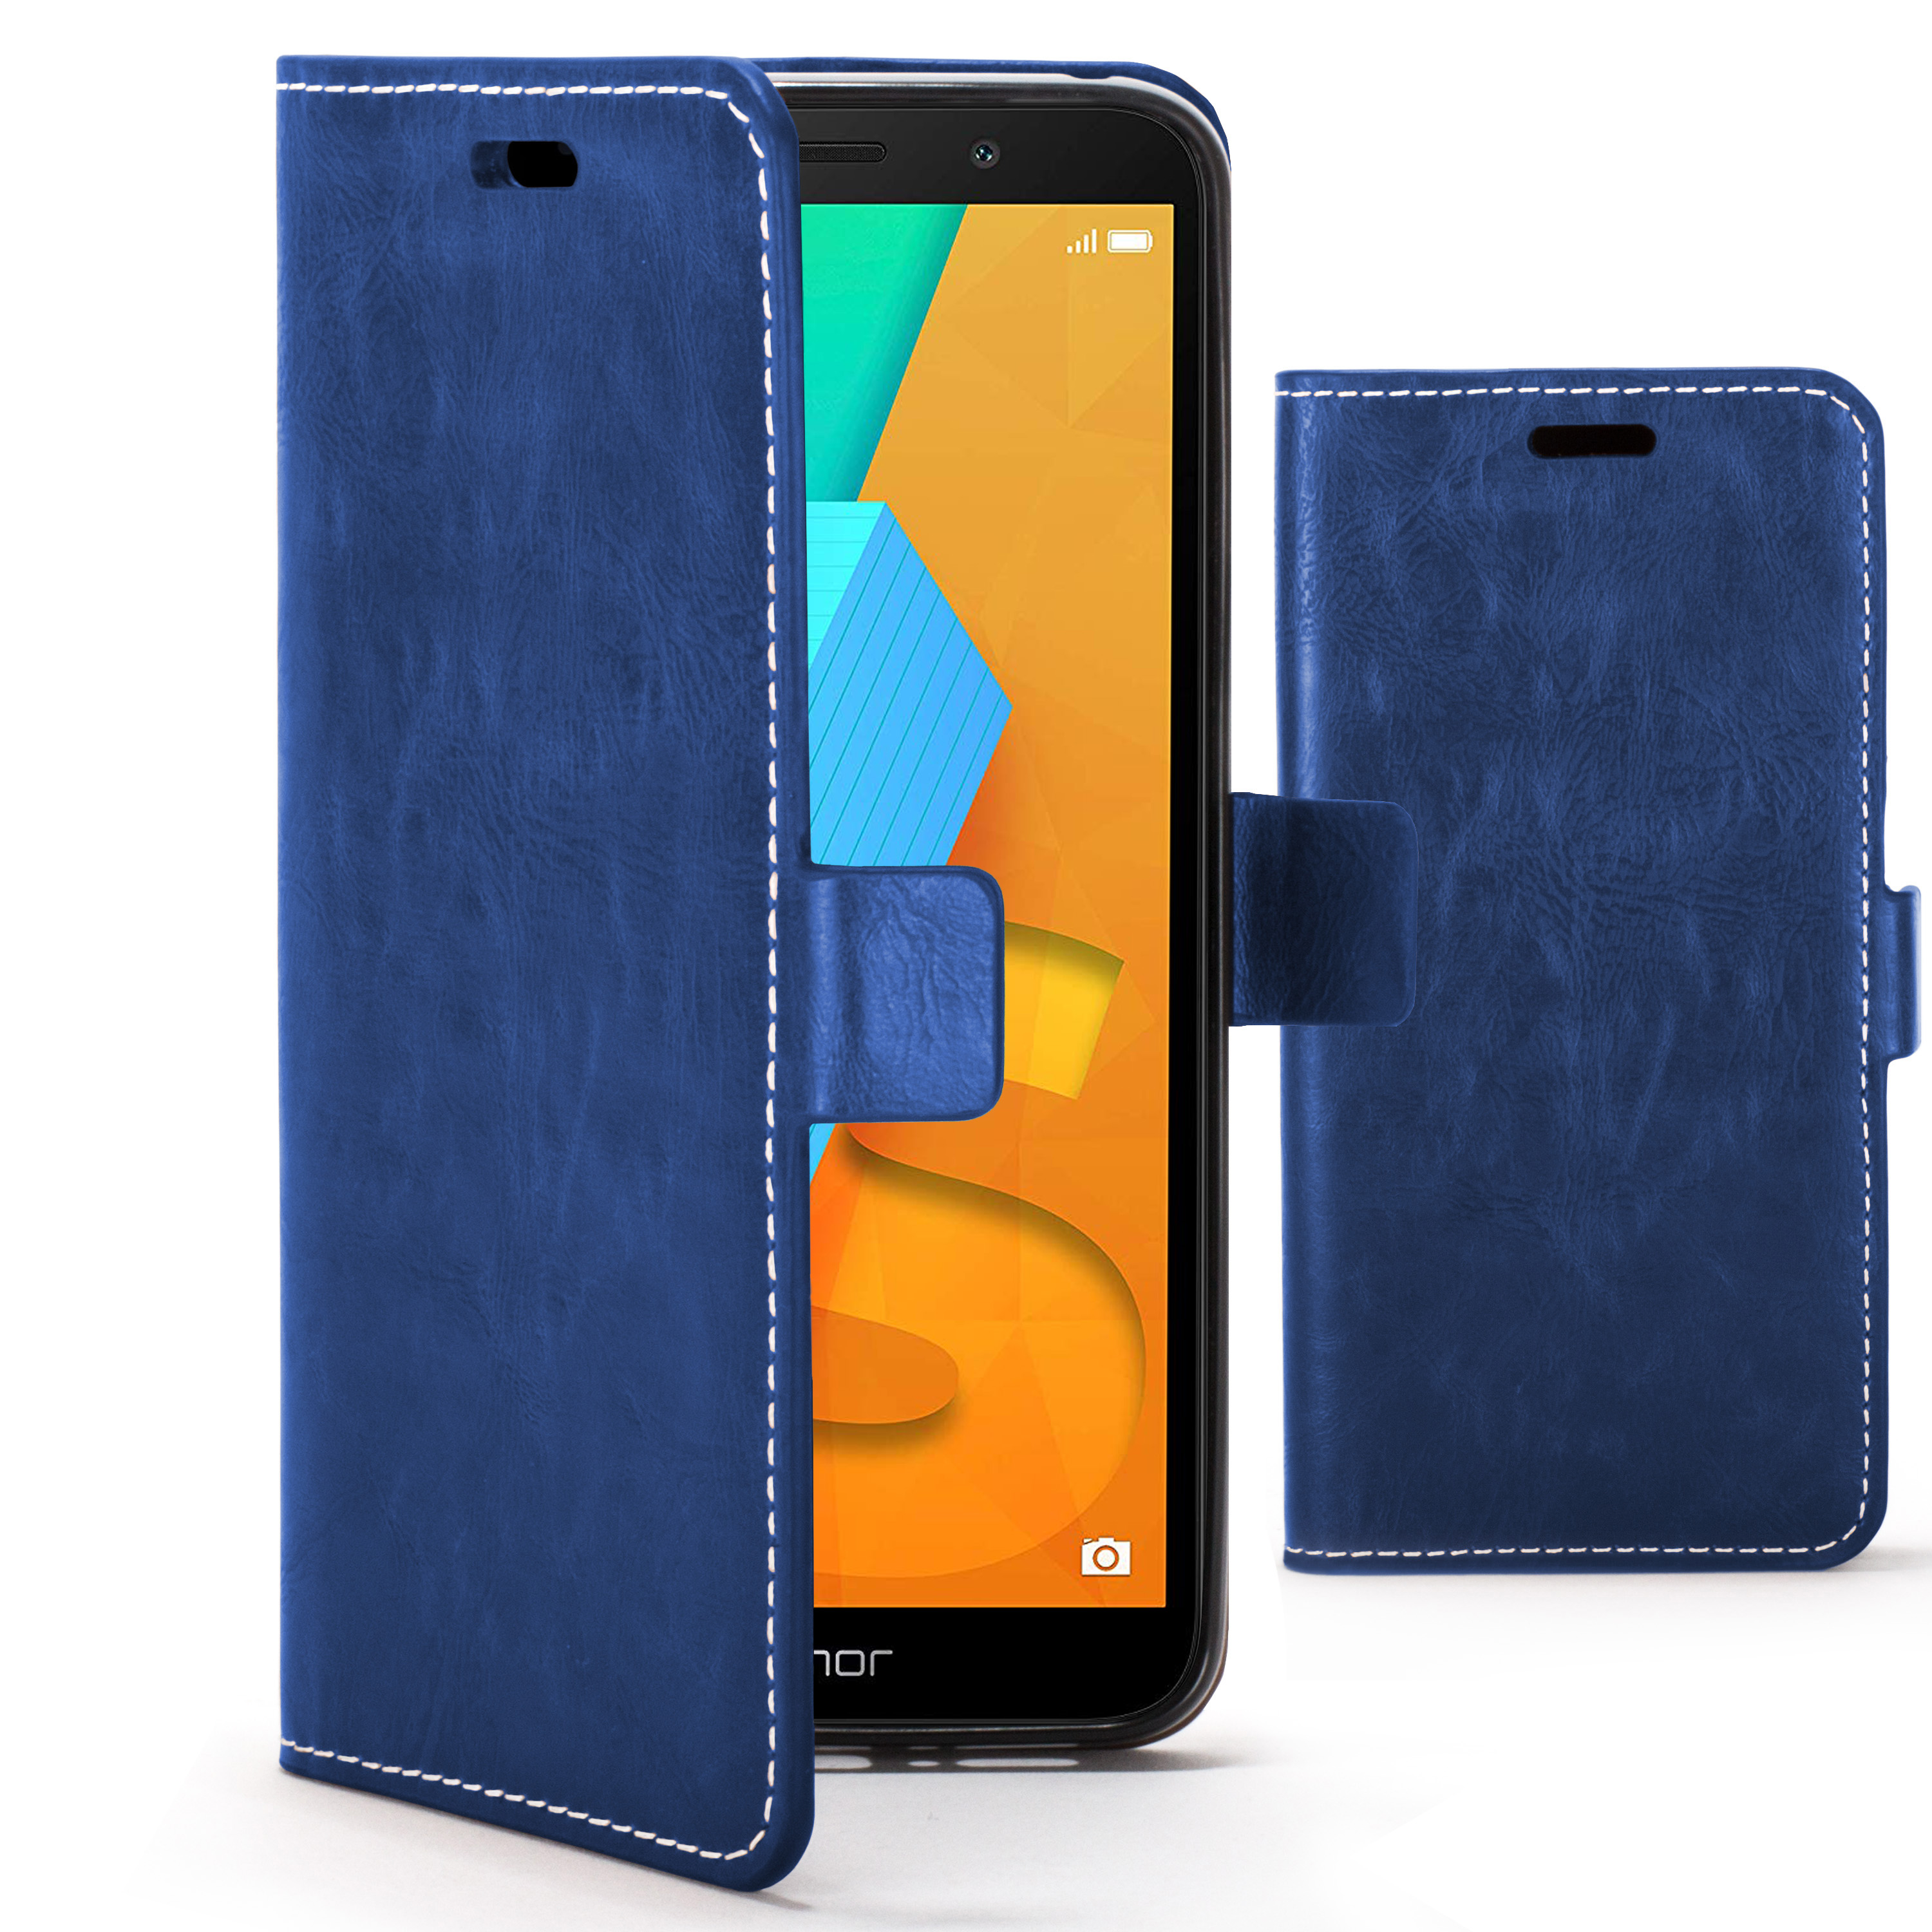 hot sale online f80e7 2e1ad Forefront Cases Huawei Honor 7S Premium Handmade PU Leather Case Cover    Navy Blue